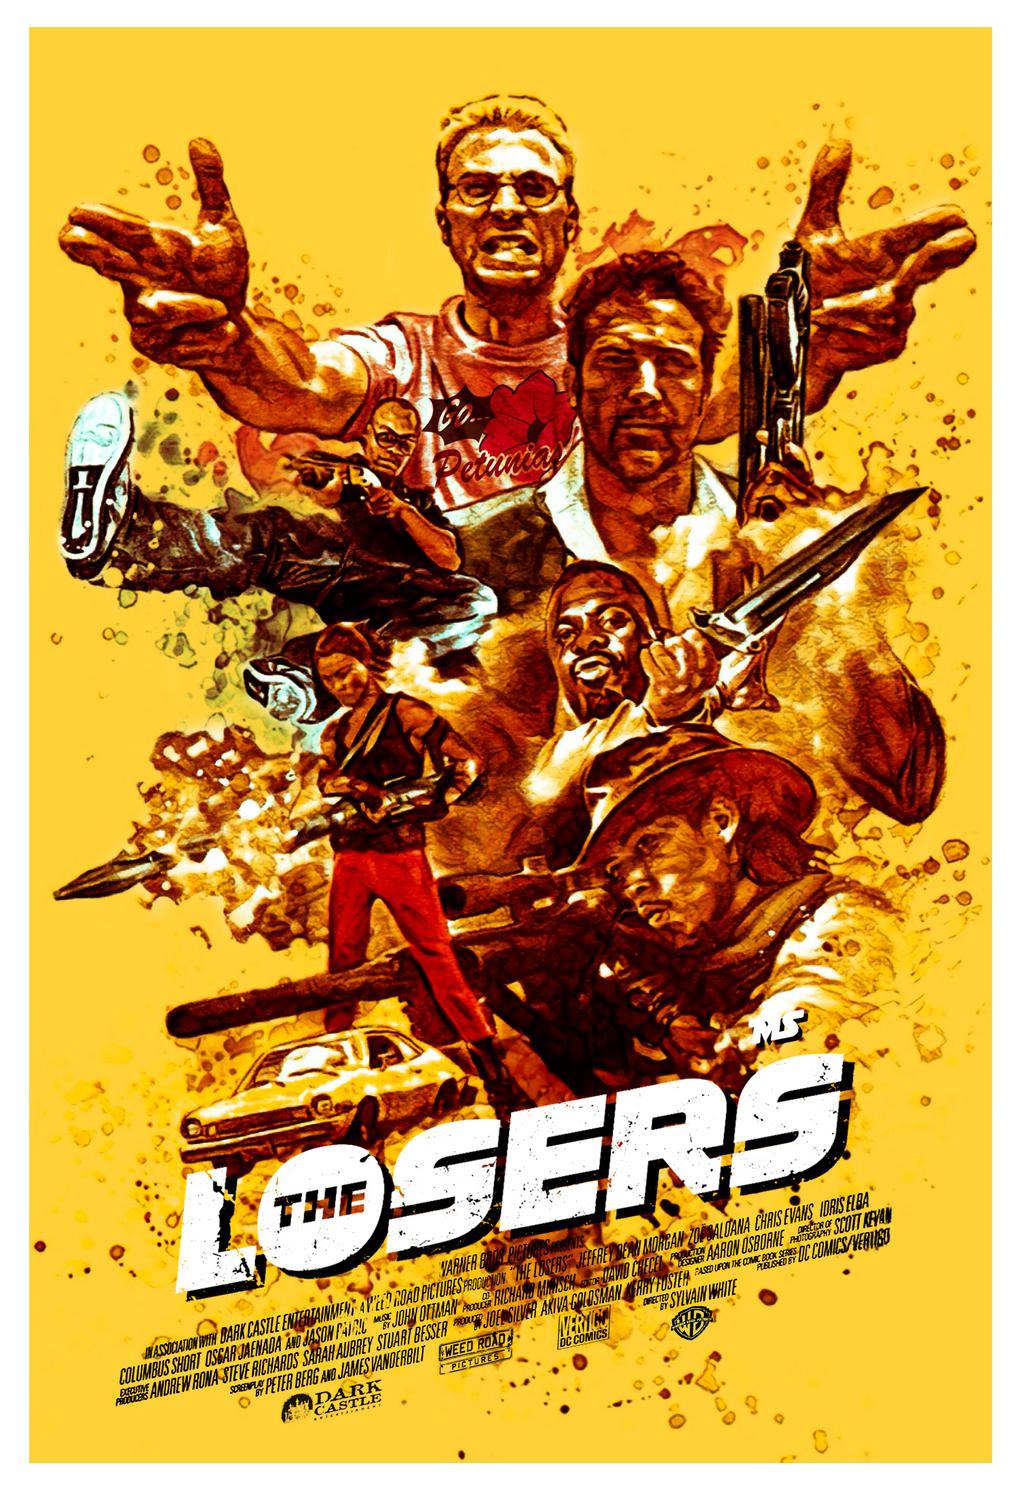 The Losers by redghostman